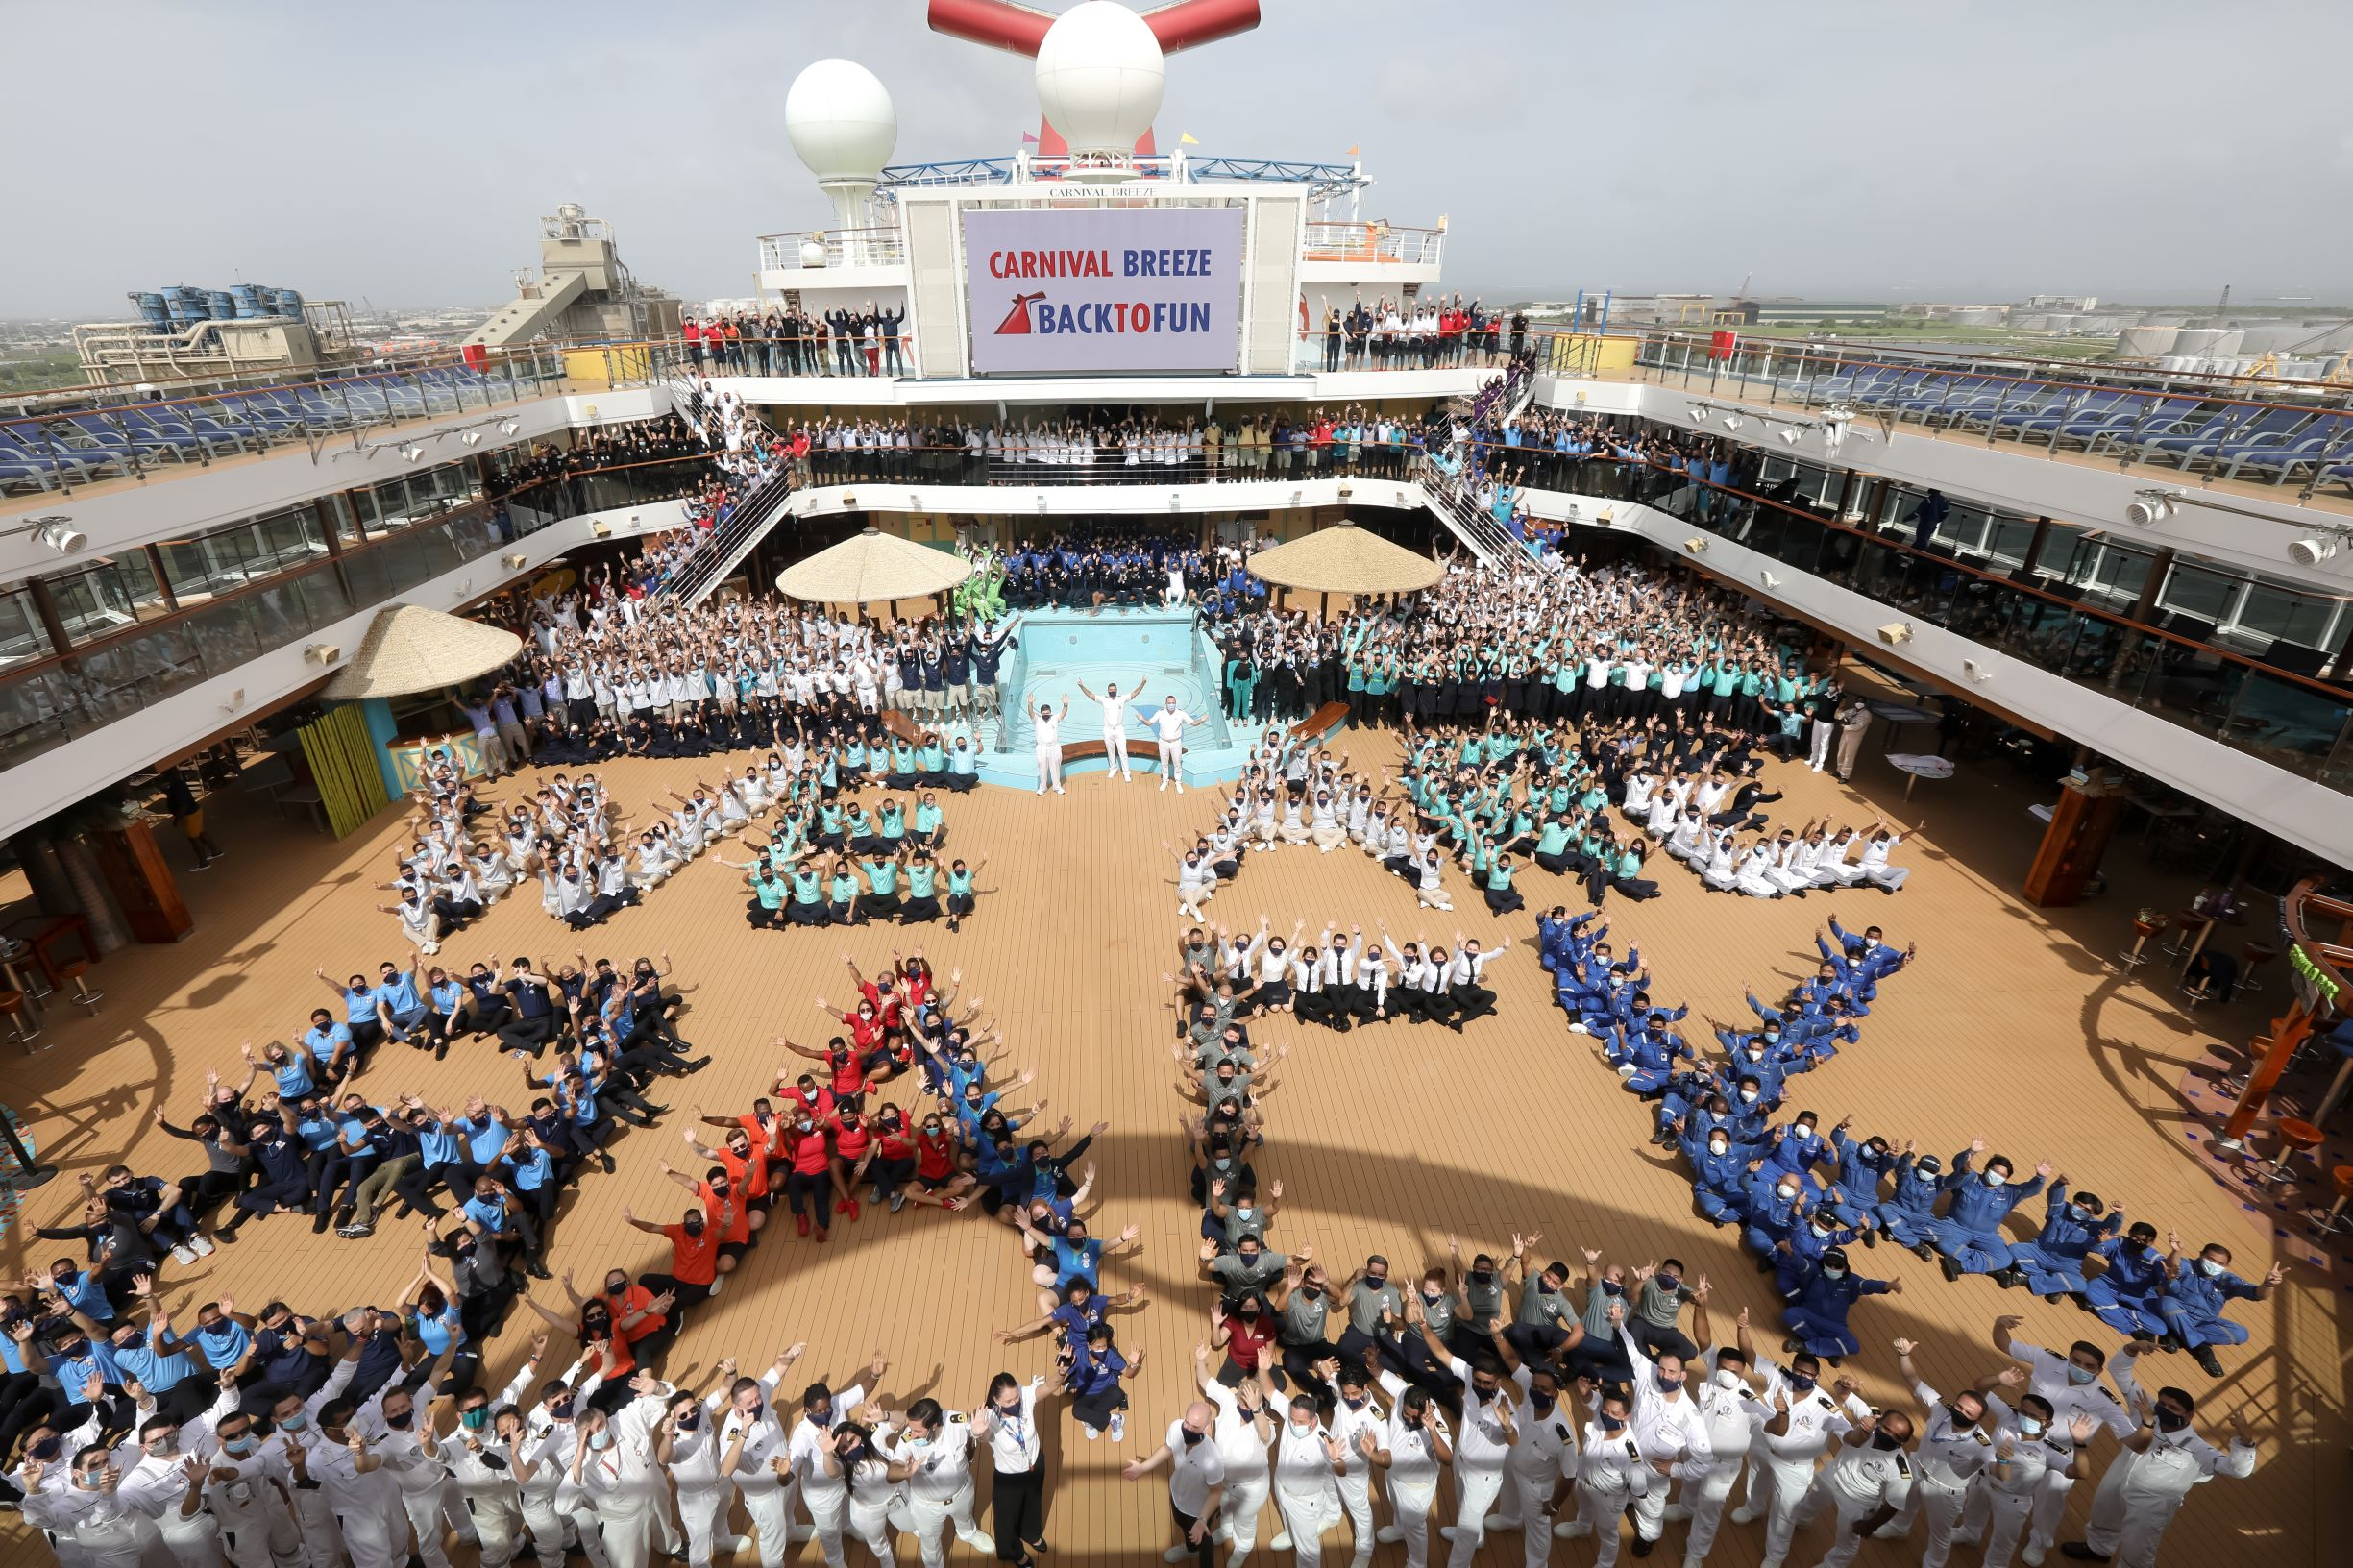 Carnival Breeze Returns to Service from Galveston Today; Third Carnival Cruise Line Ship to Resume Guest Operations